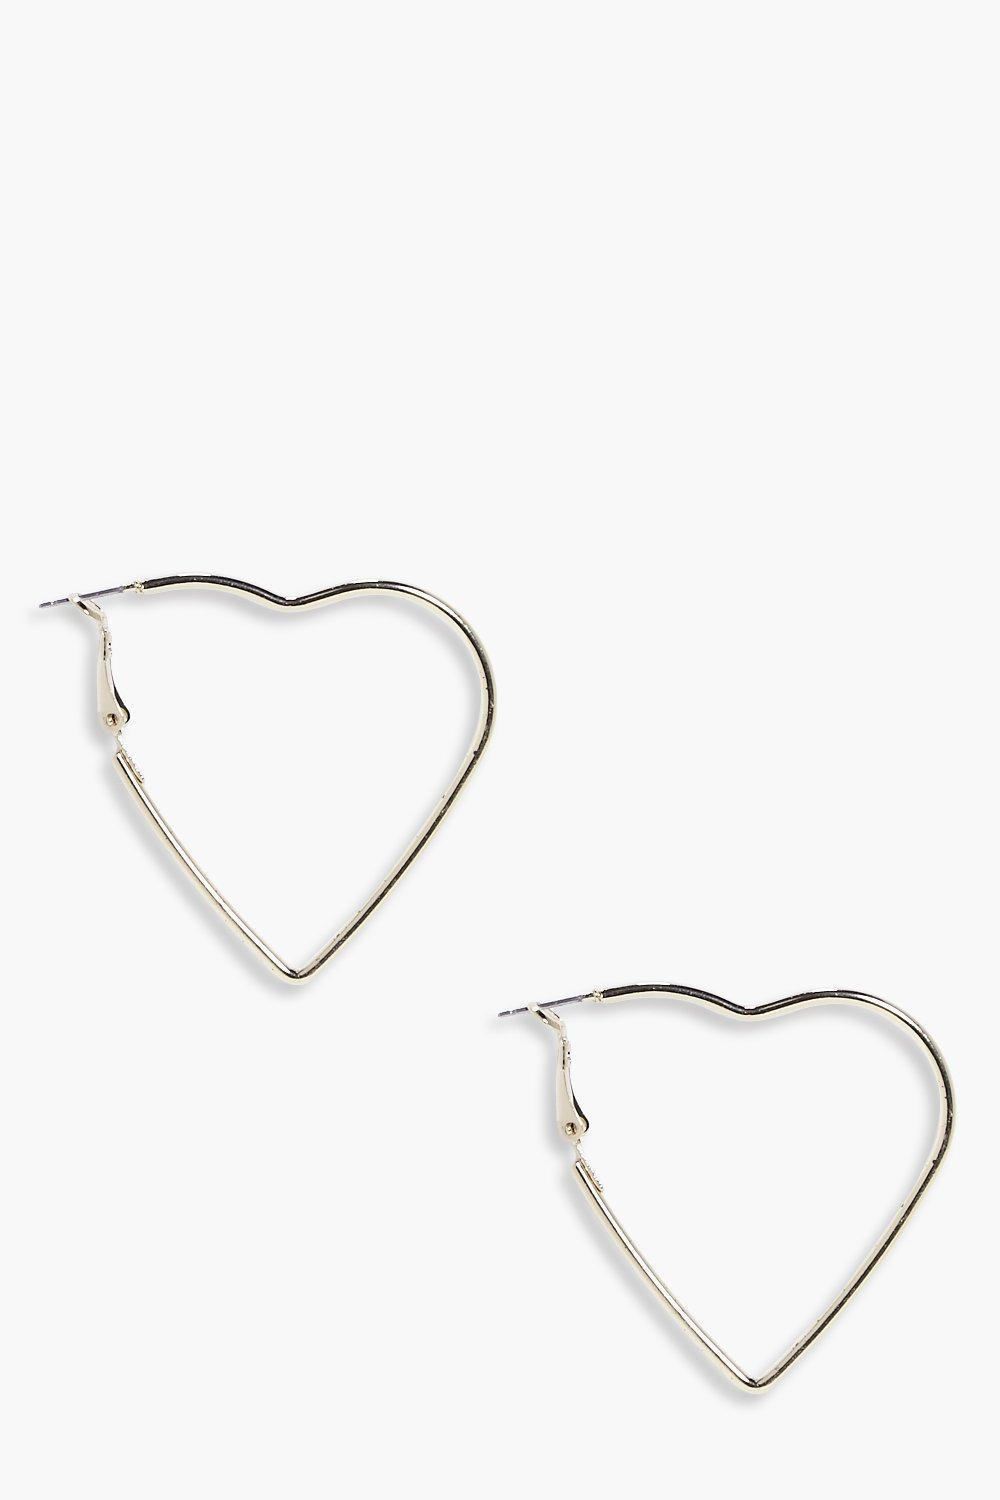 Gold Heart Hoop Earrings  gold